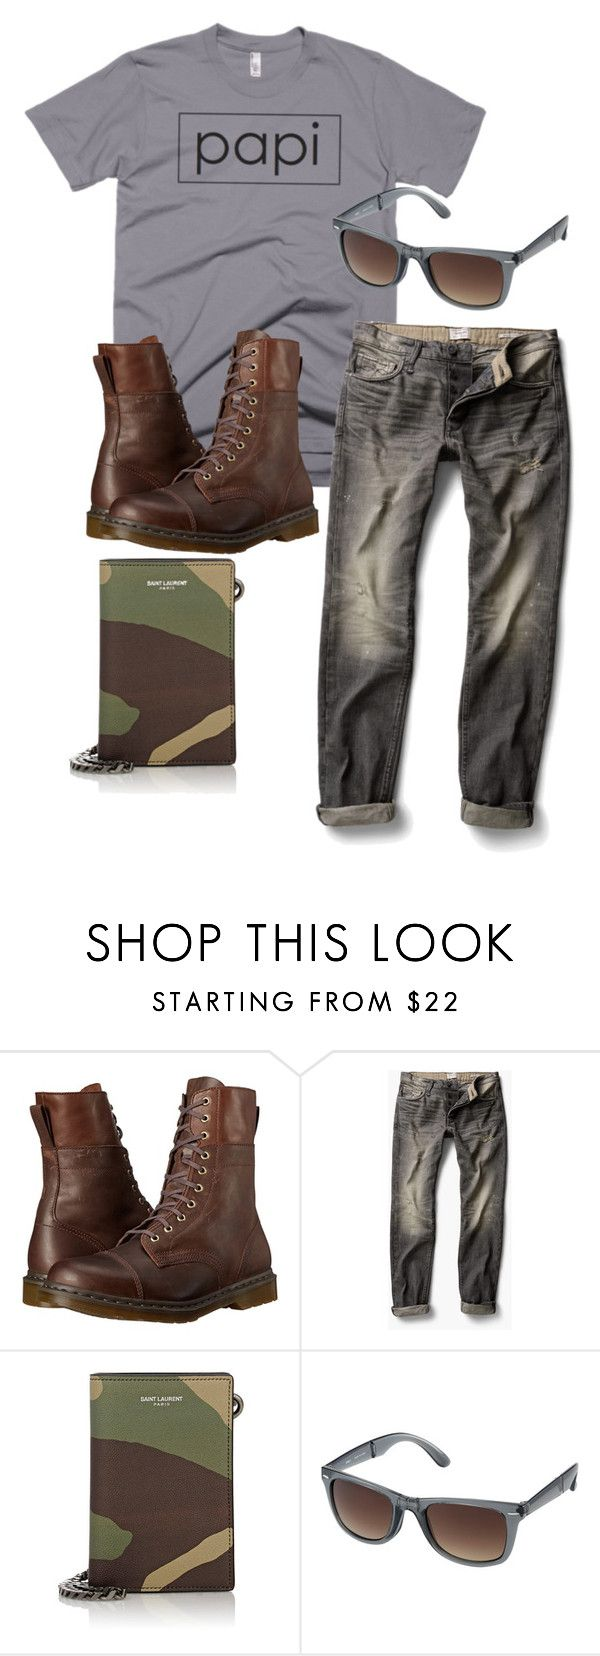 """papi t-shirt"" by bootboot on Polyvore featuring Dr. Martens, MANGO, Yves Saint Laurent, Uniqlo, men's fashion and menswear"